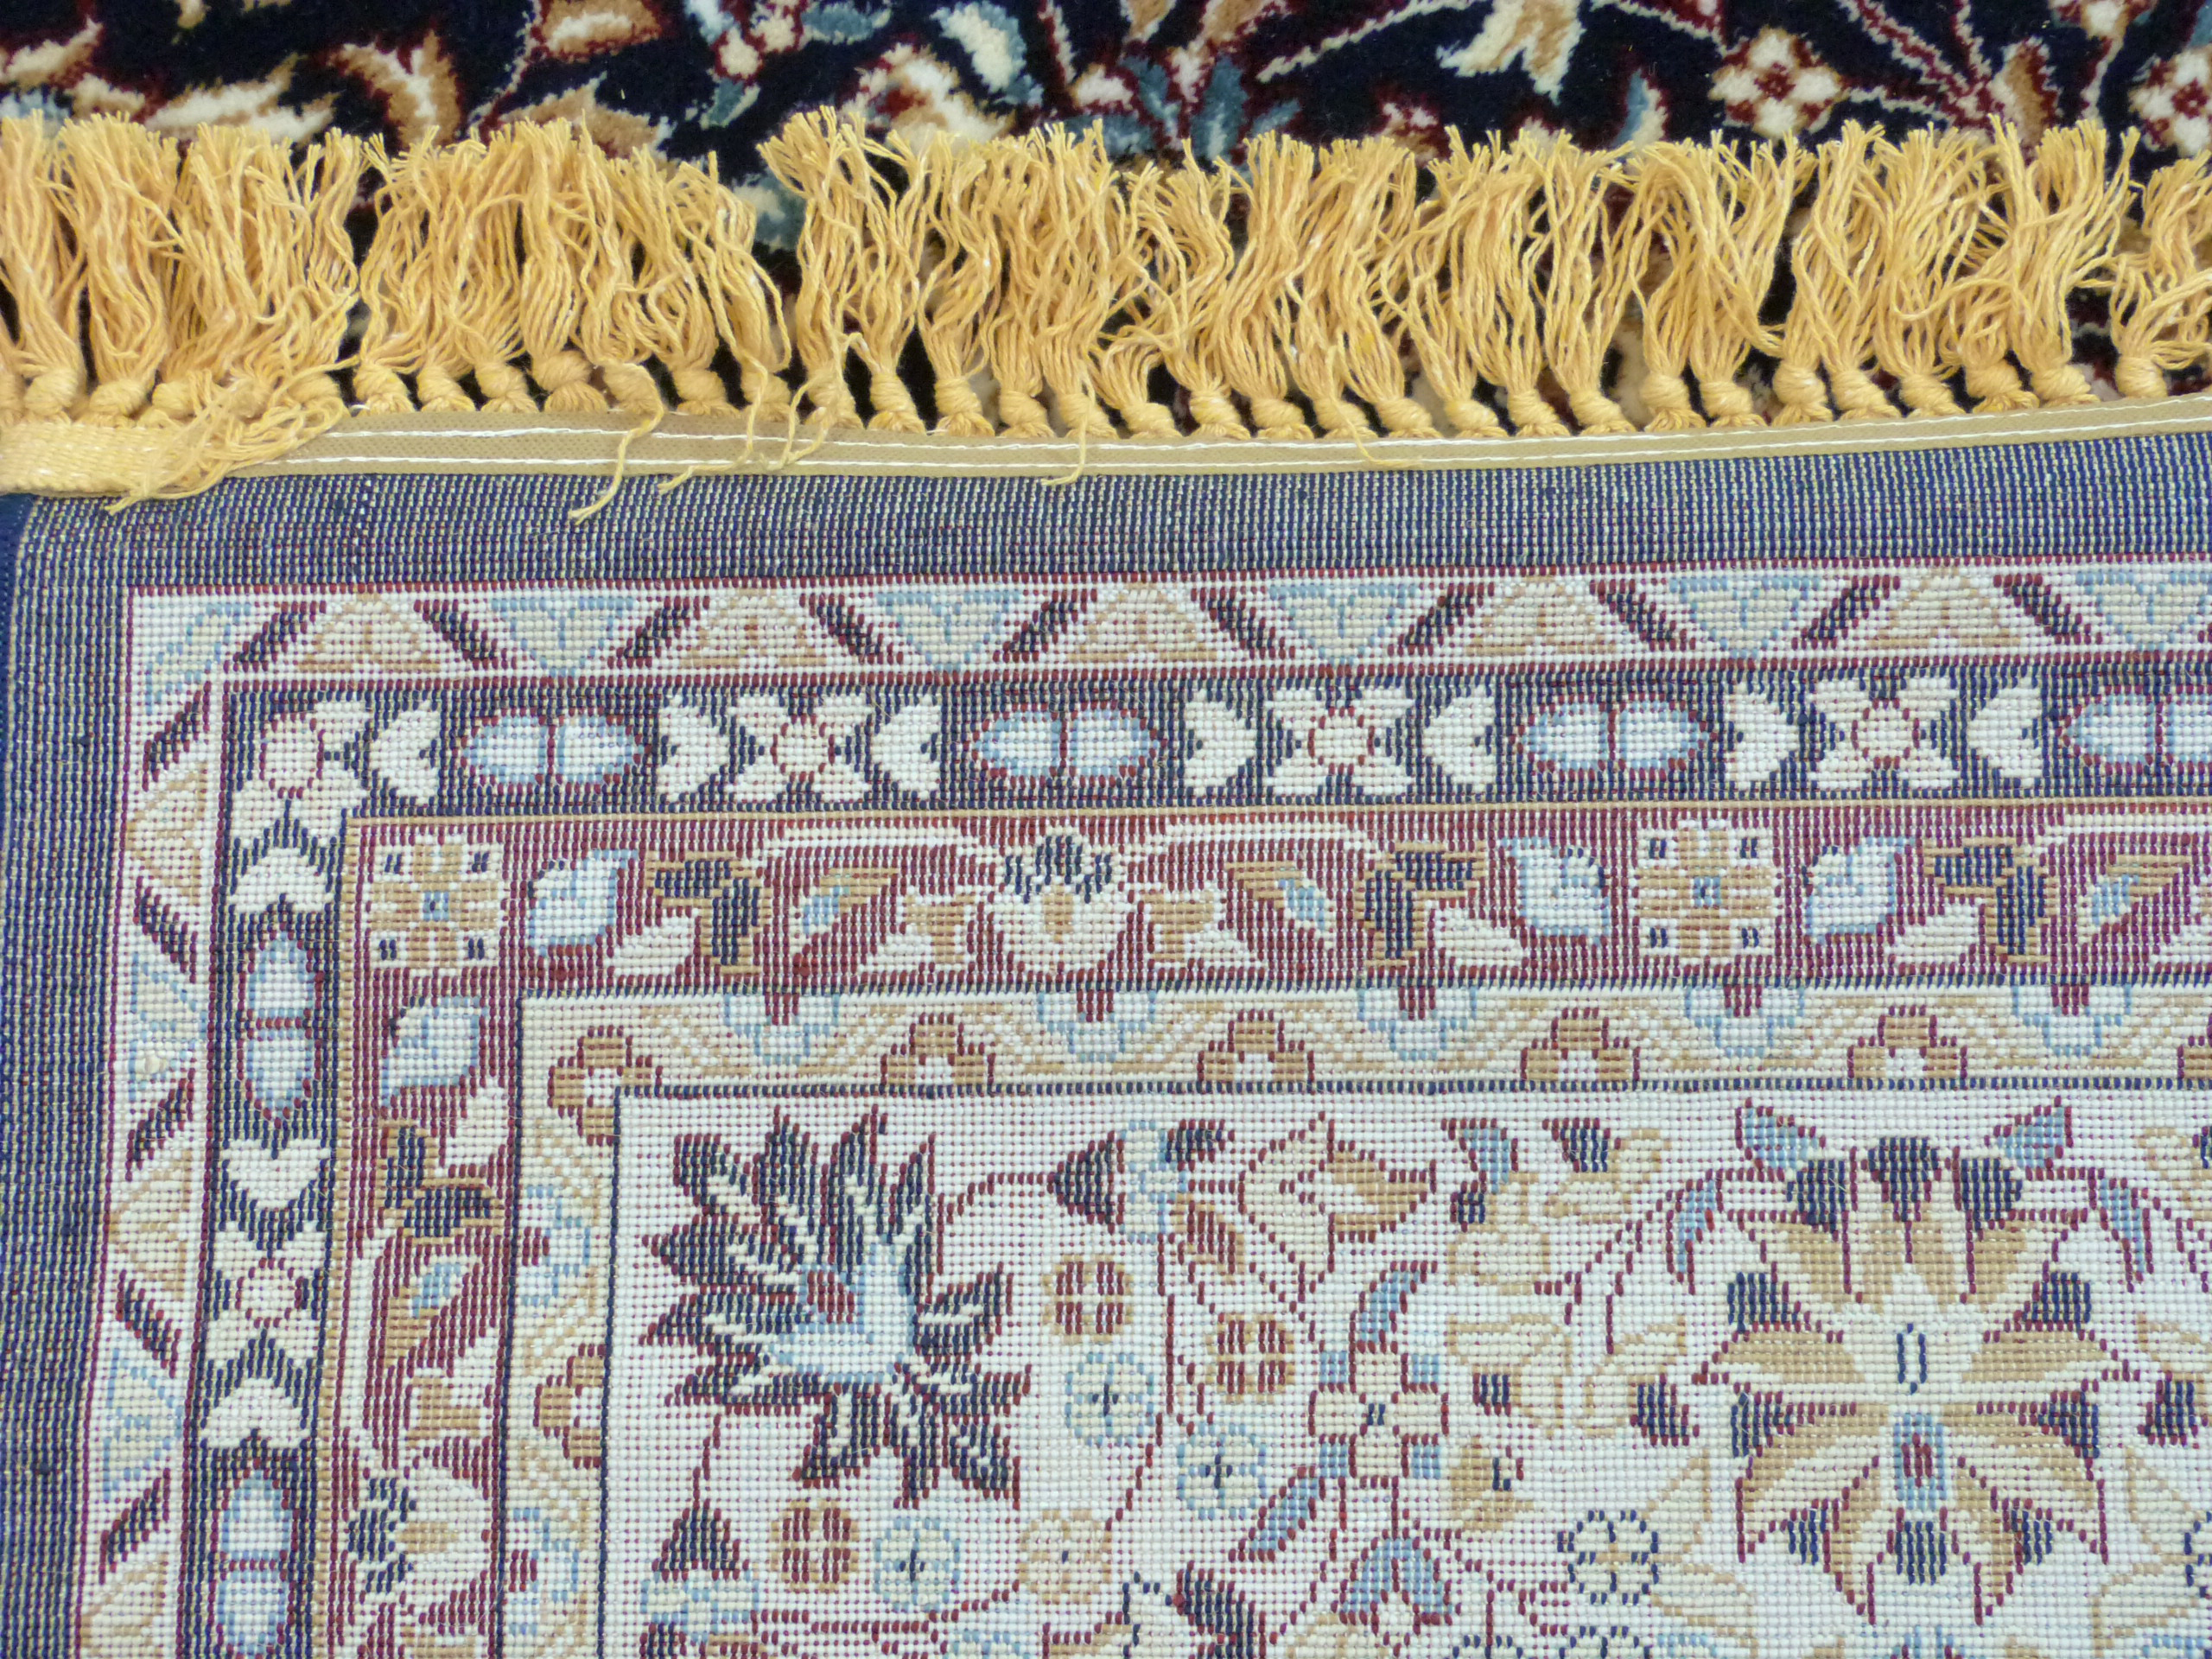 Rich blue ground full pile Turkish Carpet, with floral medallion design 320cm x 200cm approximately - Image 8 of 8